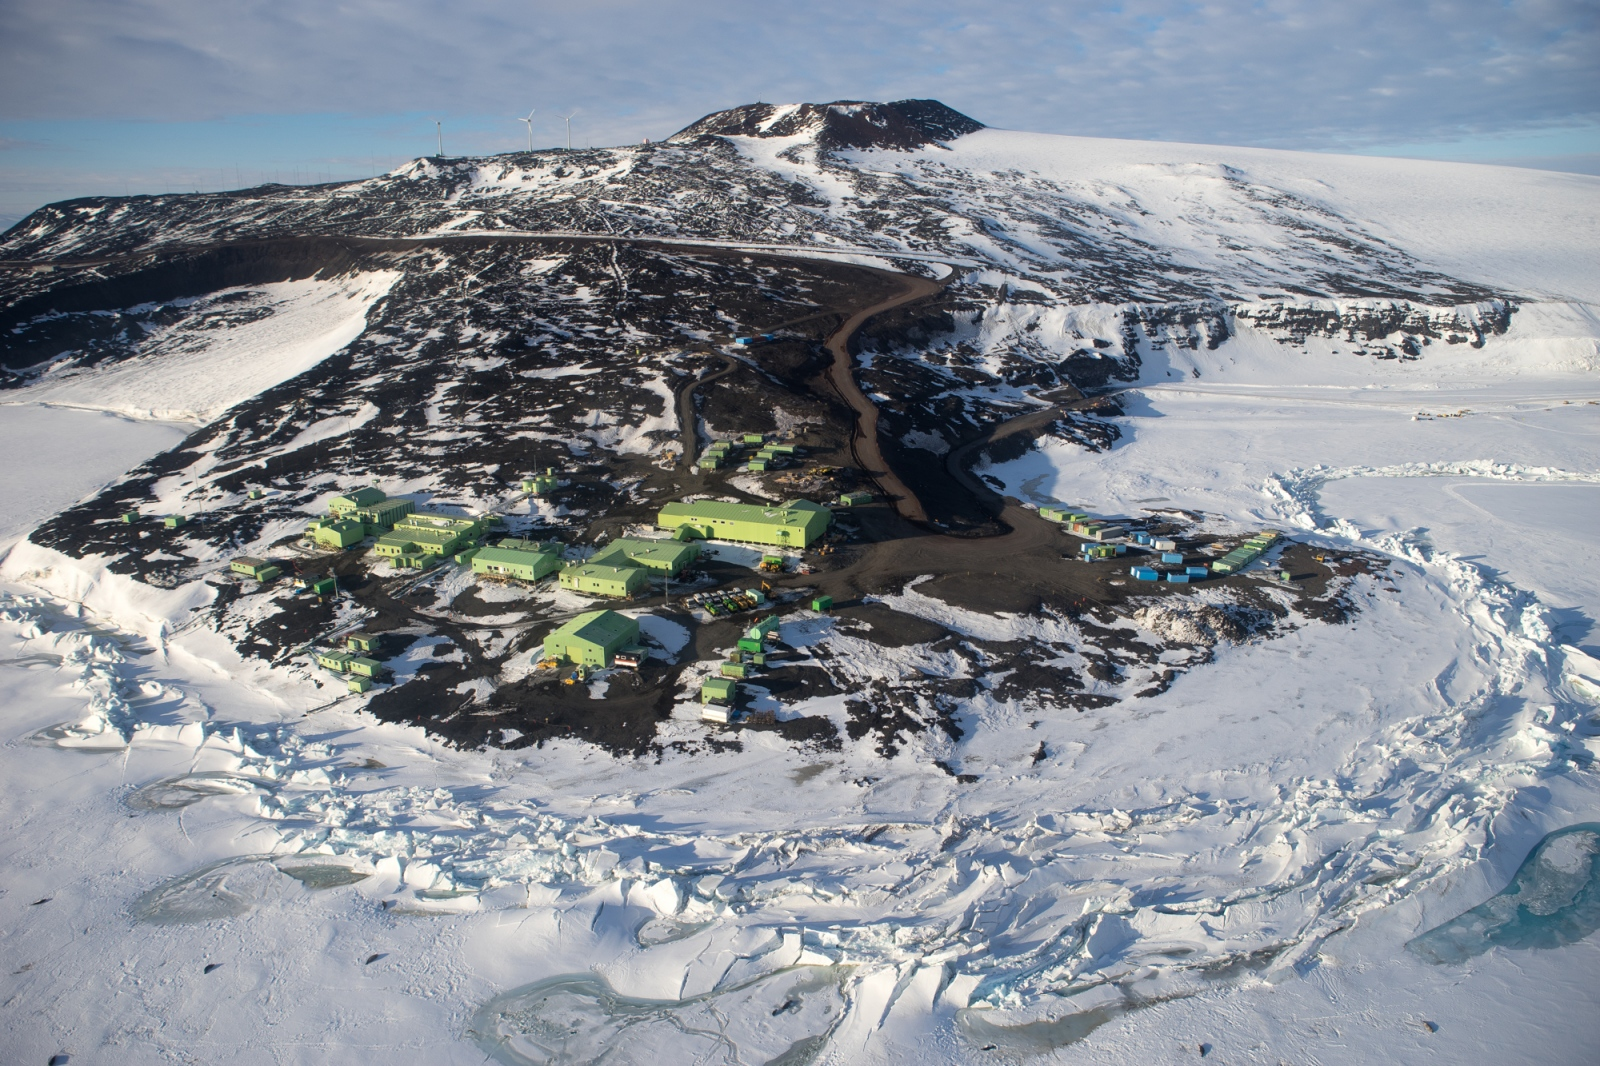 Scott Base, Antarctica. This is New Zealand's primary research station on the continent and is only a few kilometers away from McMurdo station, the United State's (and Antarctica's) largest scientific research station.